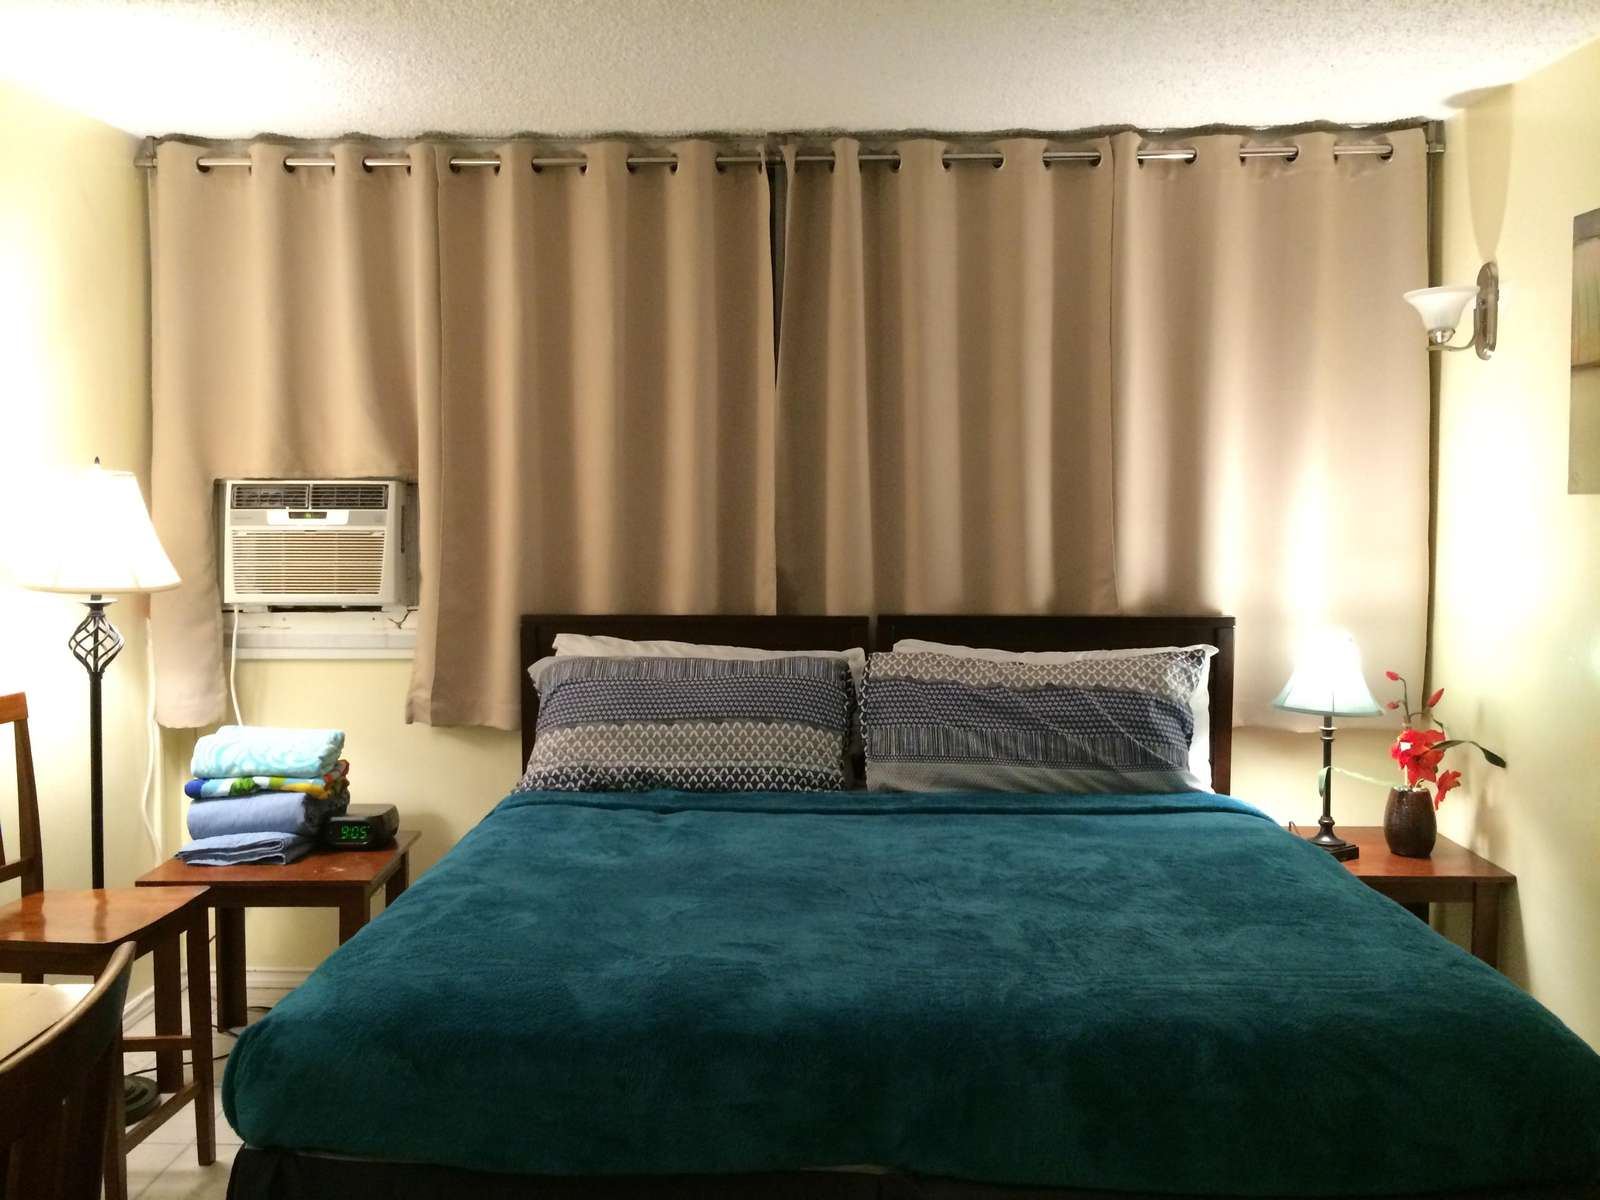 New Curtains added 12/19/2017